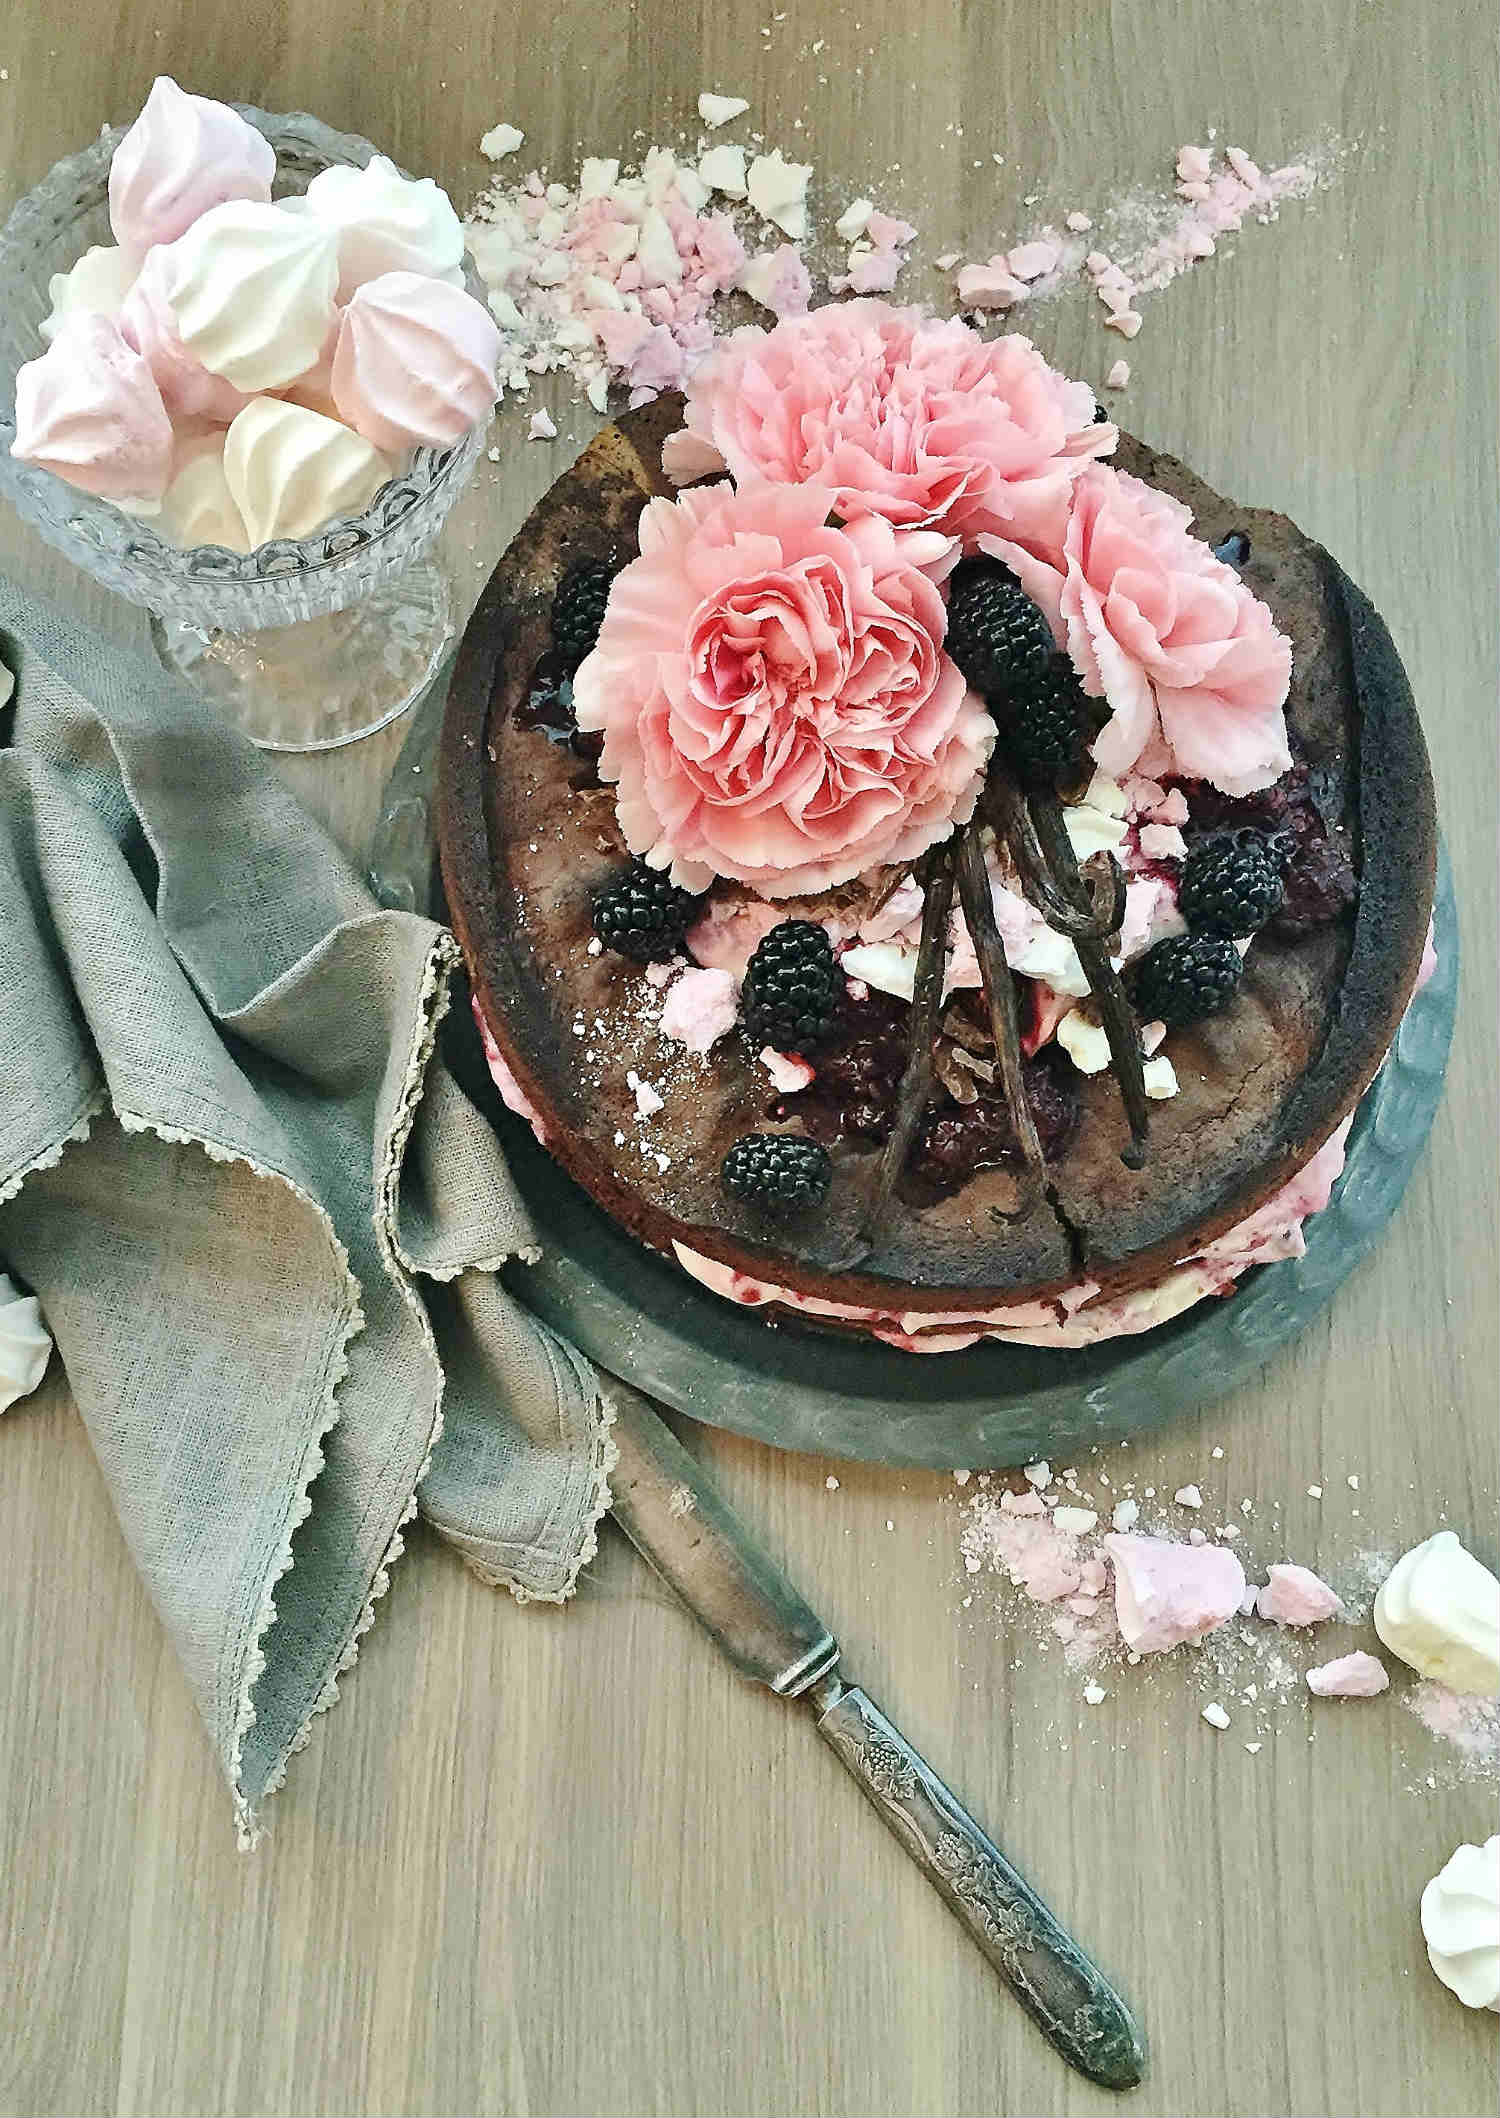 Quick & Easy Chocolate Cake with Blackberry Cream